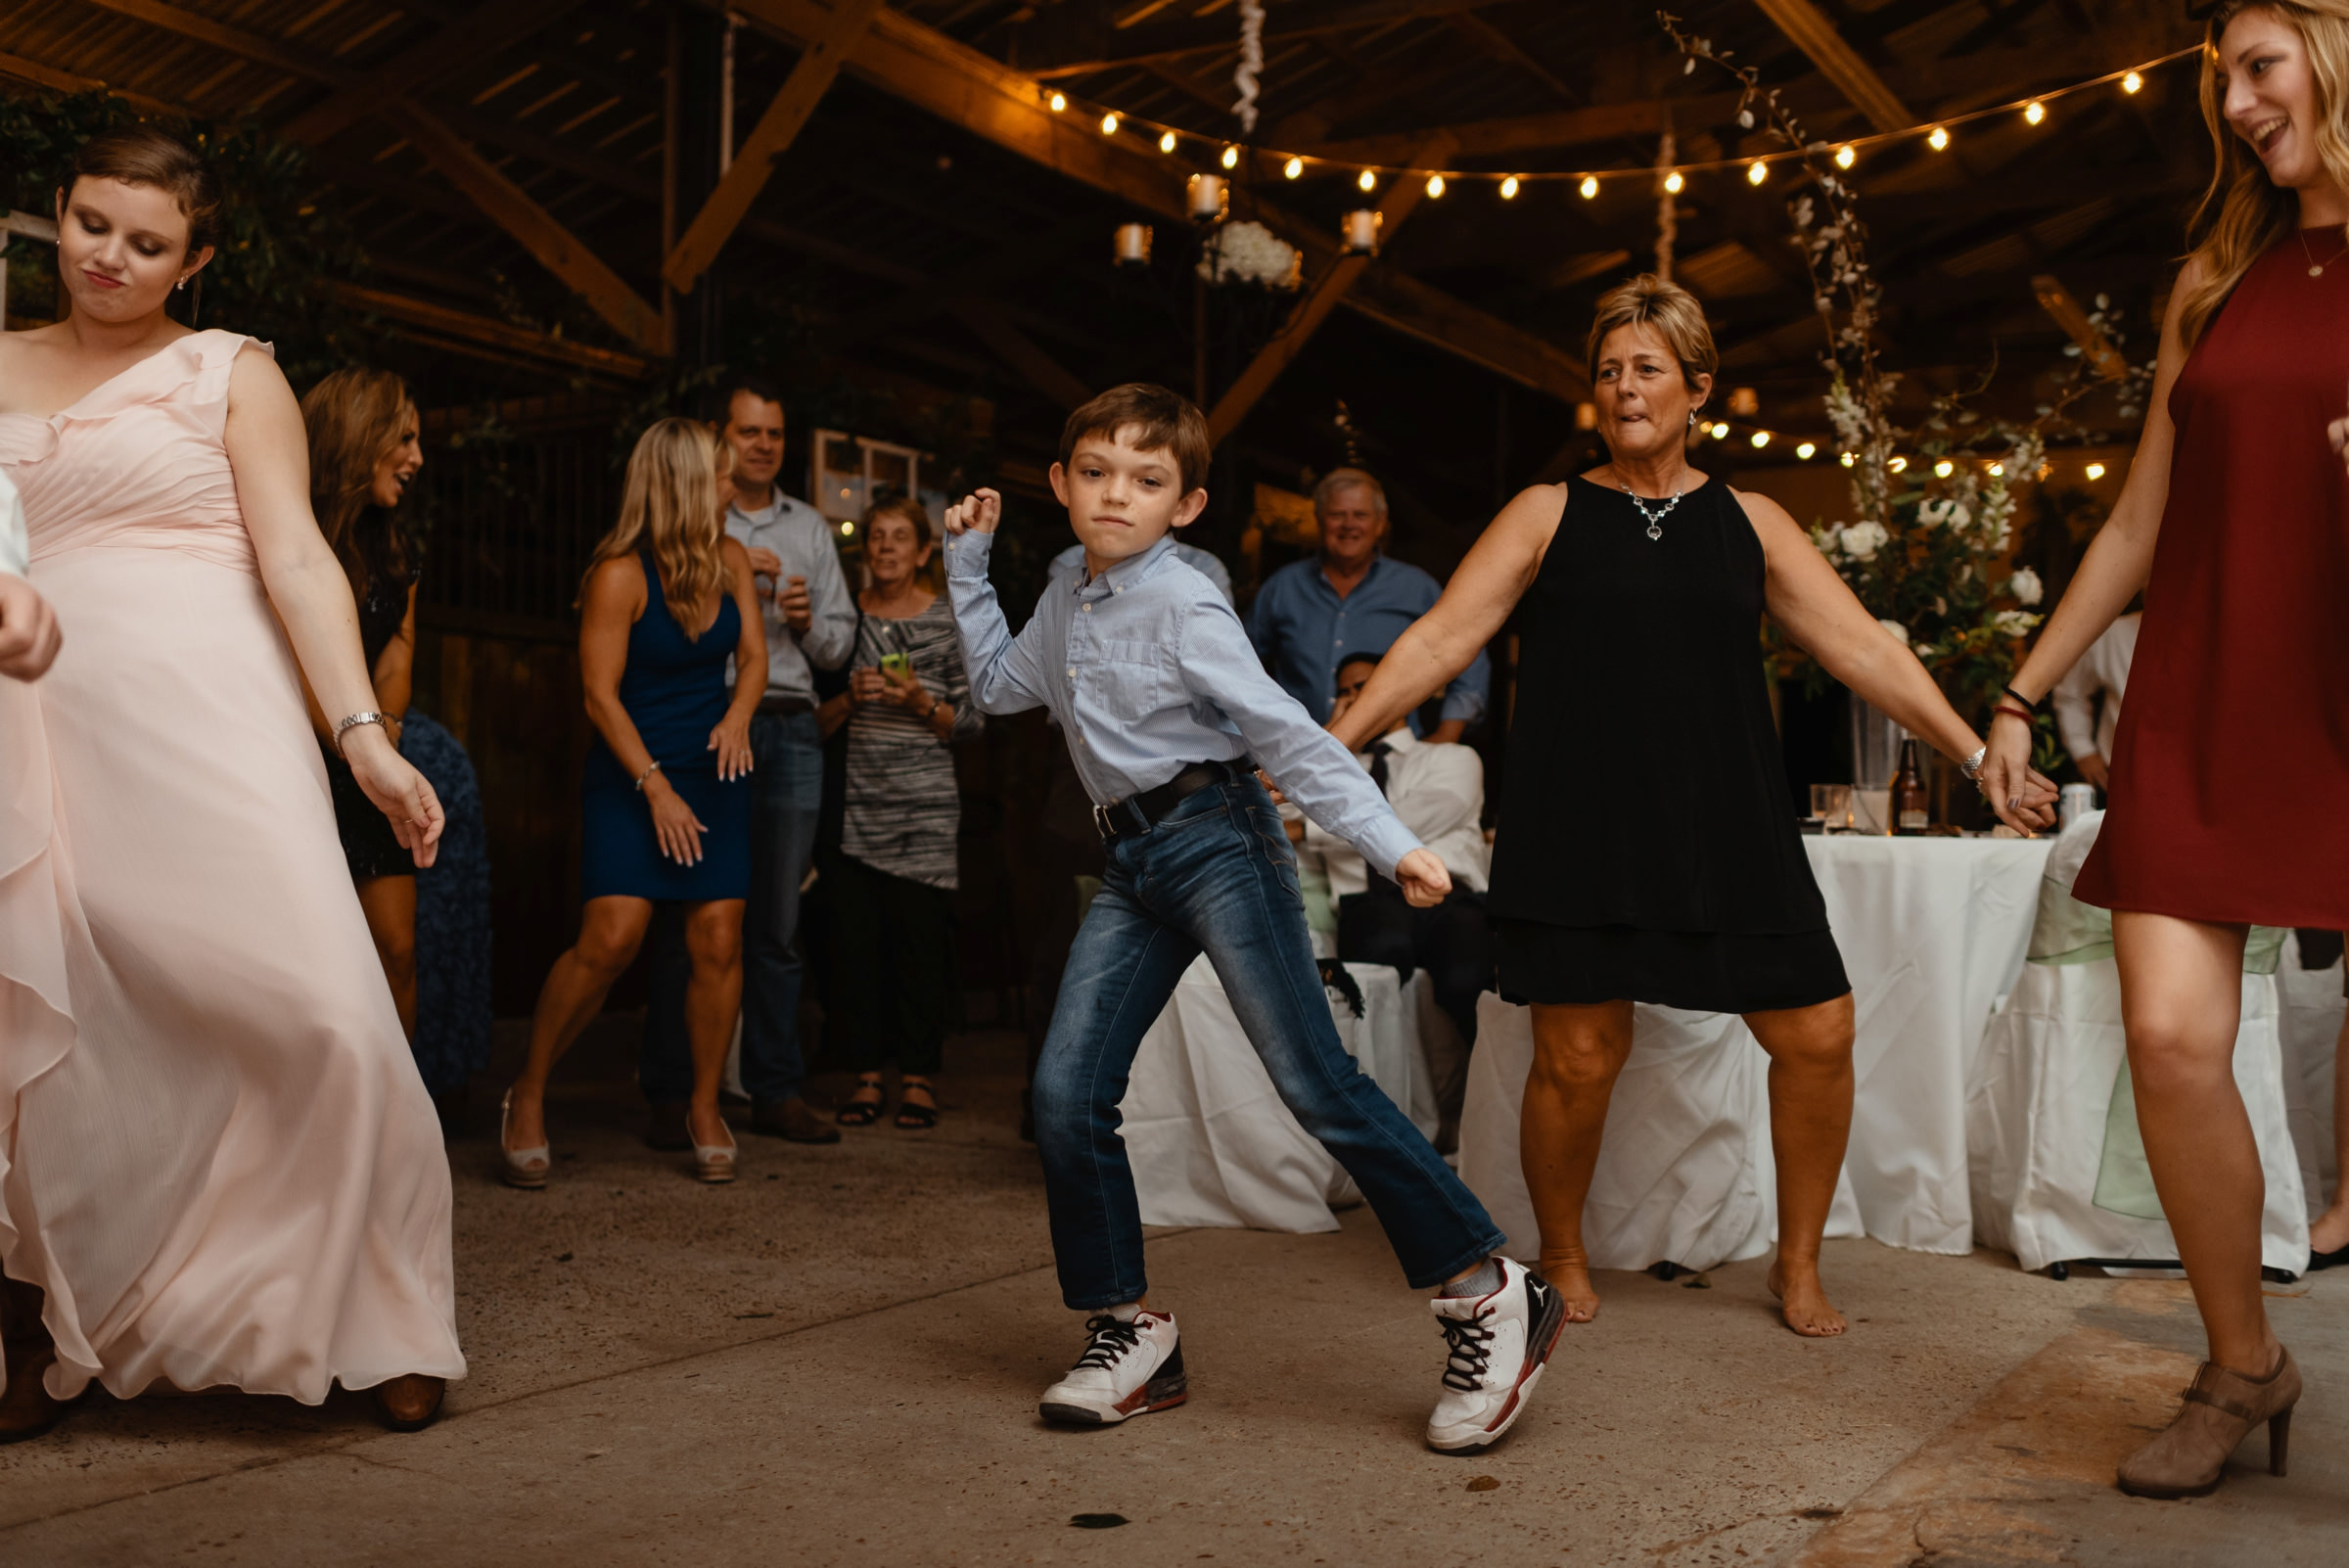 little boy dancing on the dance floor-new orleans-austin-houston-wedding photographer- photo by Dark Roux